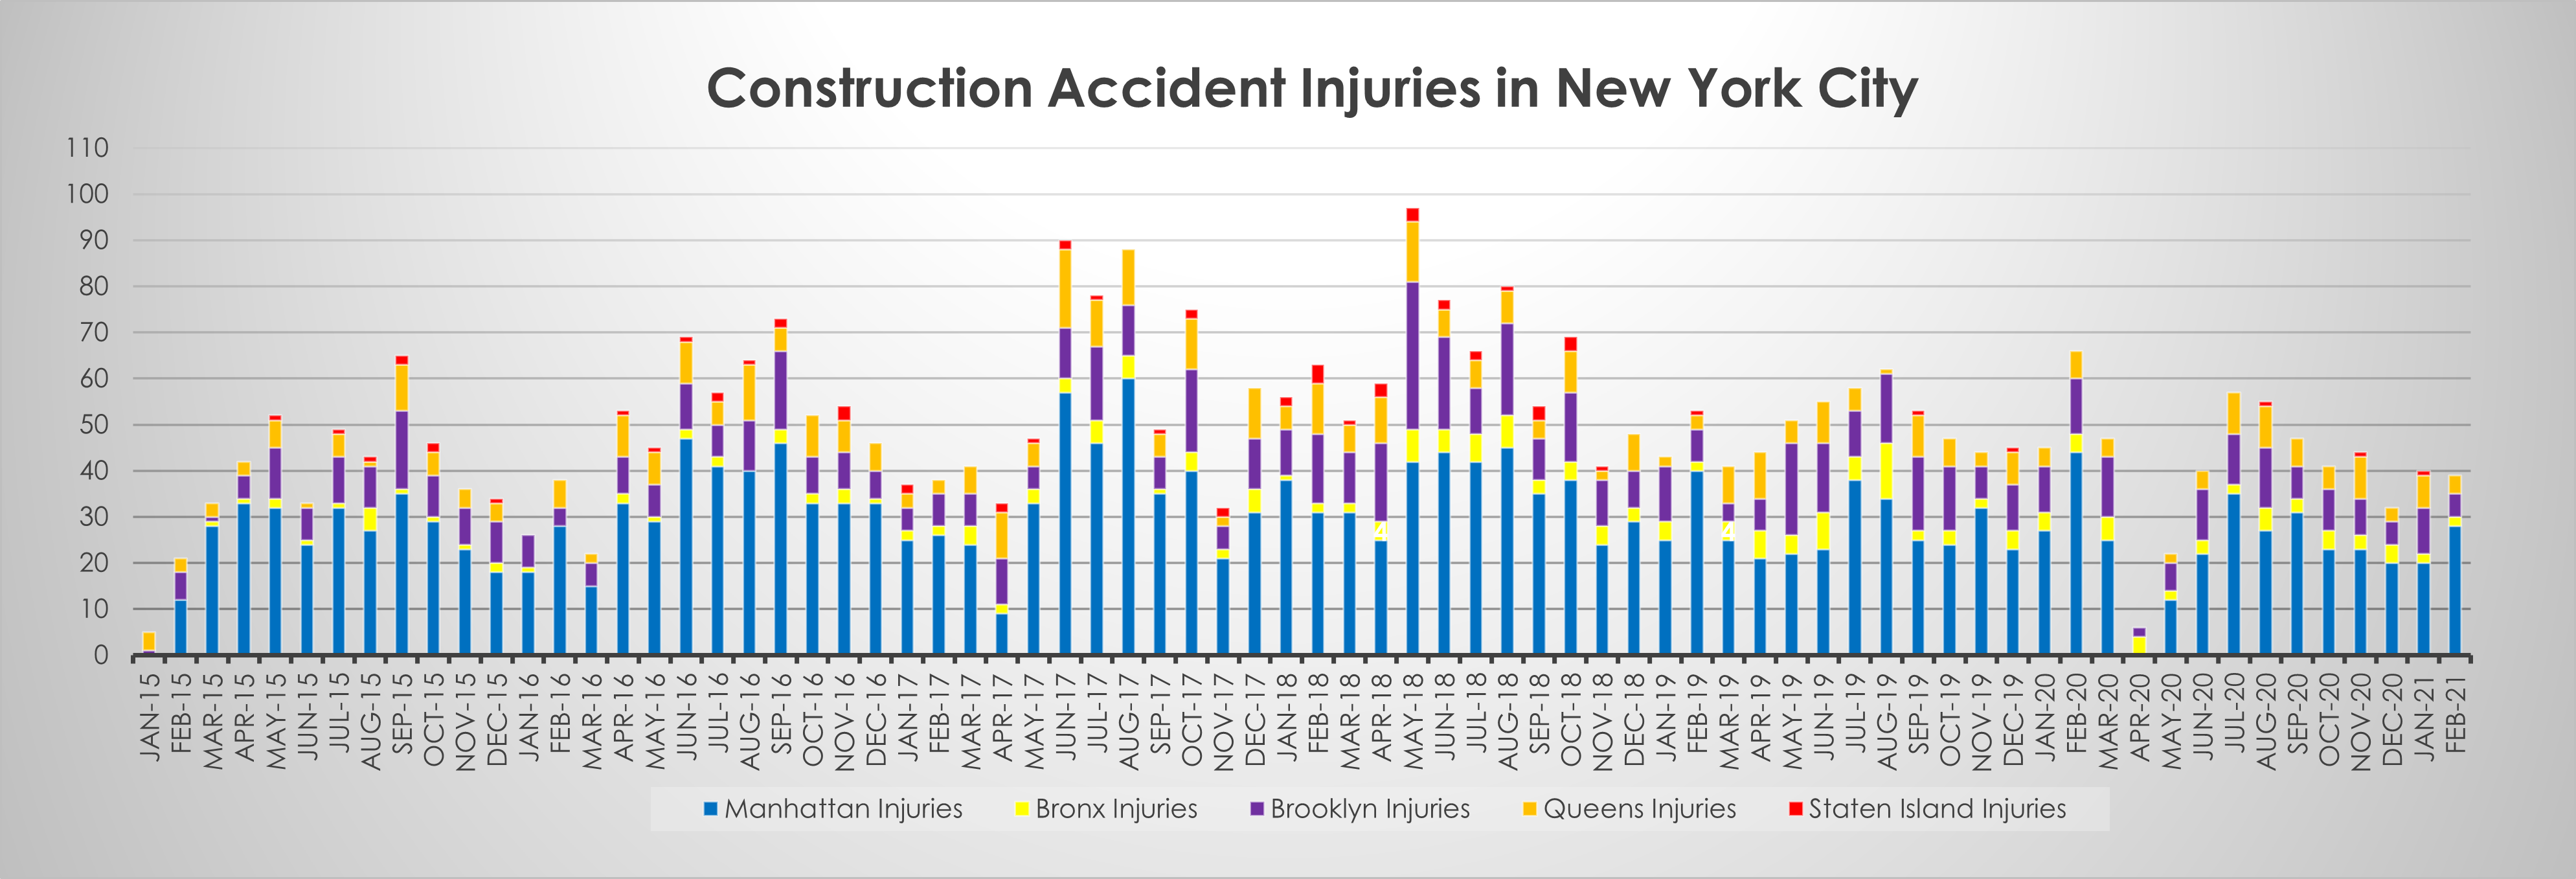 Construction Accident Injuries in New York by borough February 21